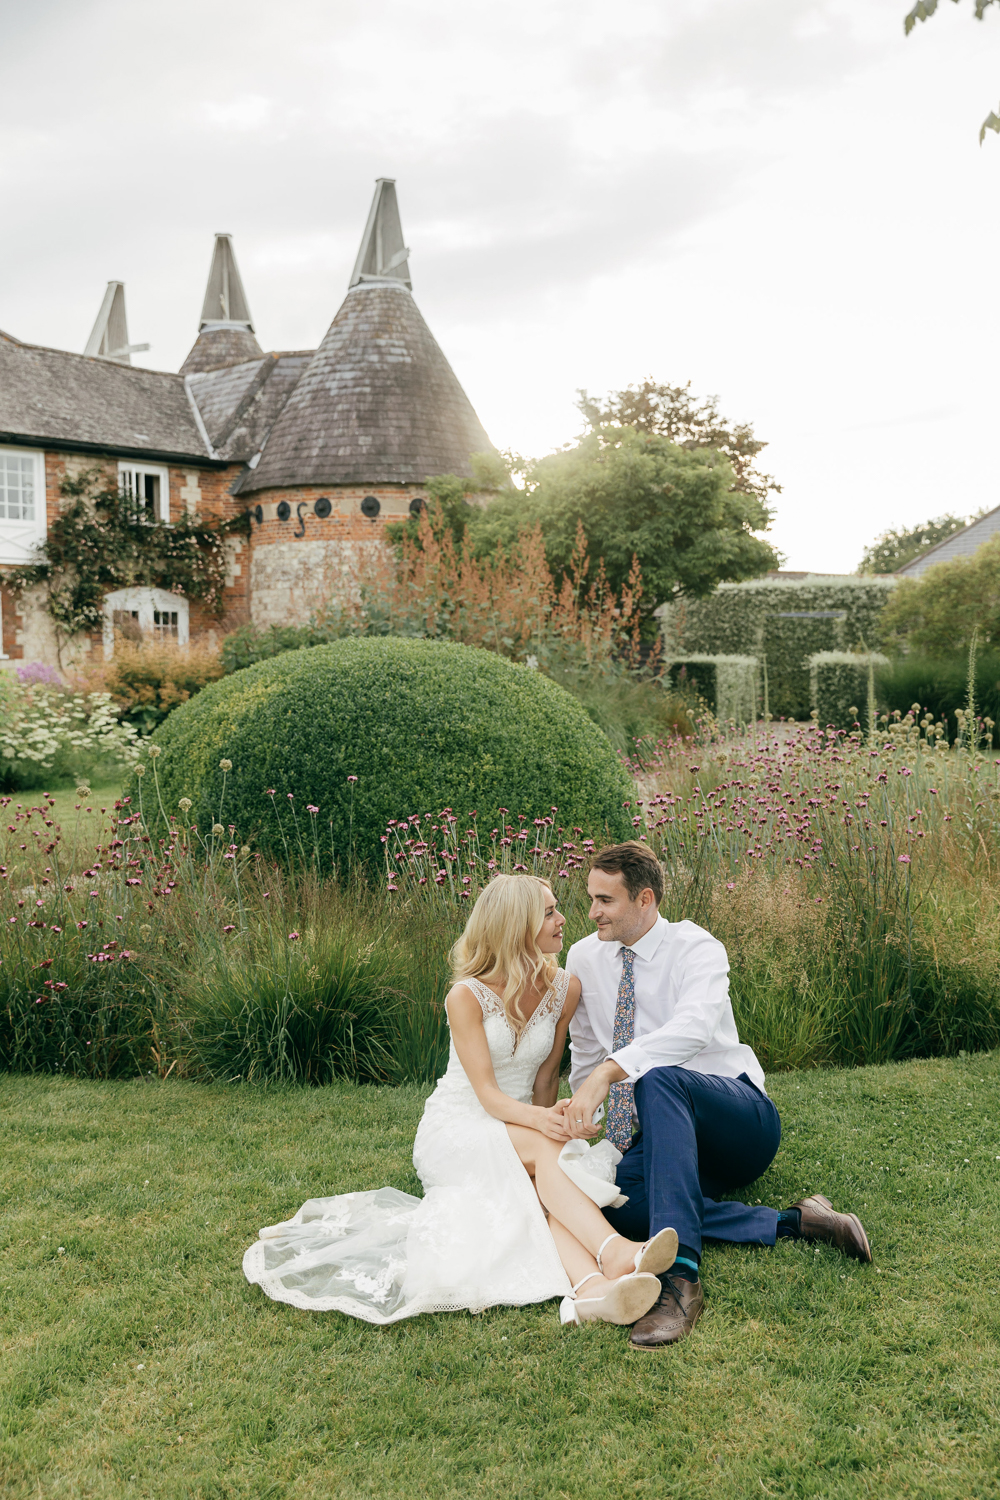 candid photo of bride and groom sat amongst flowers in beautiful garden